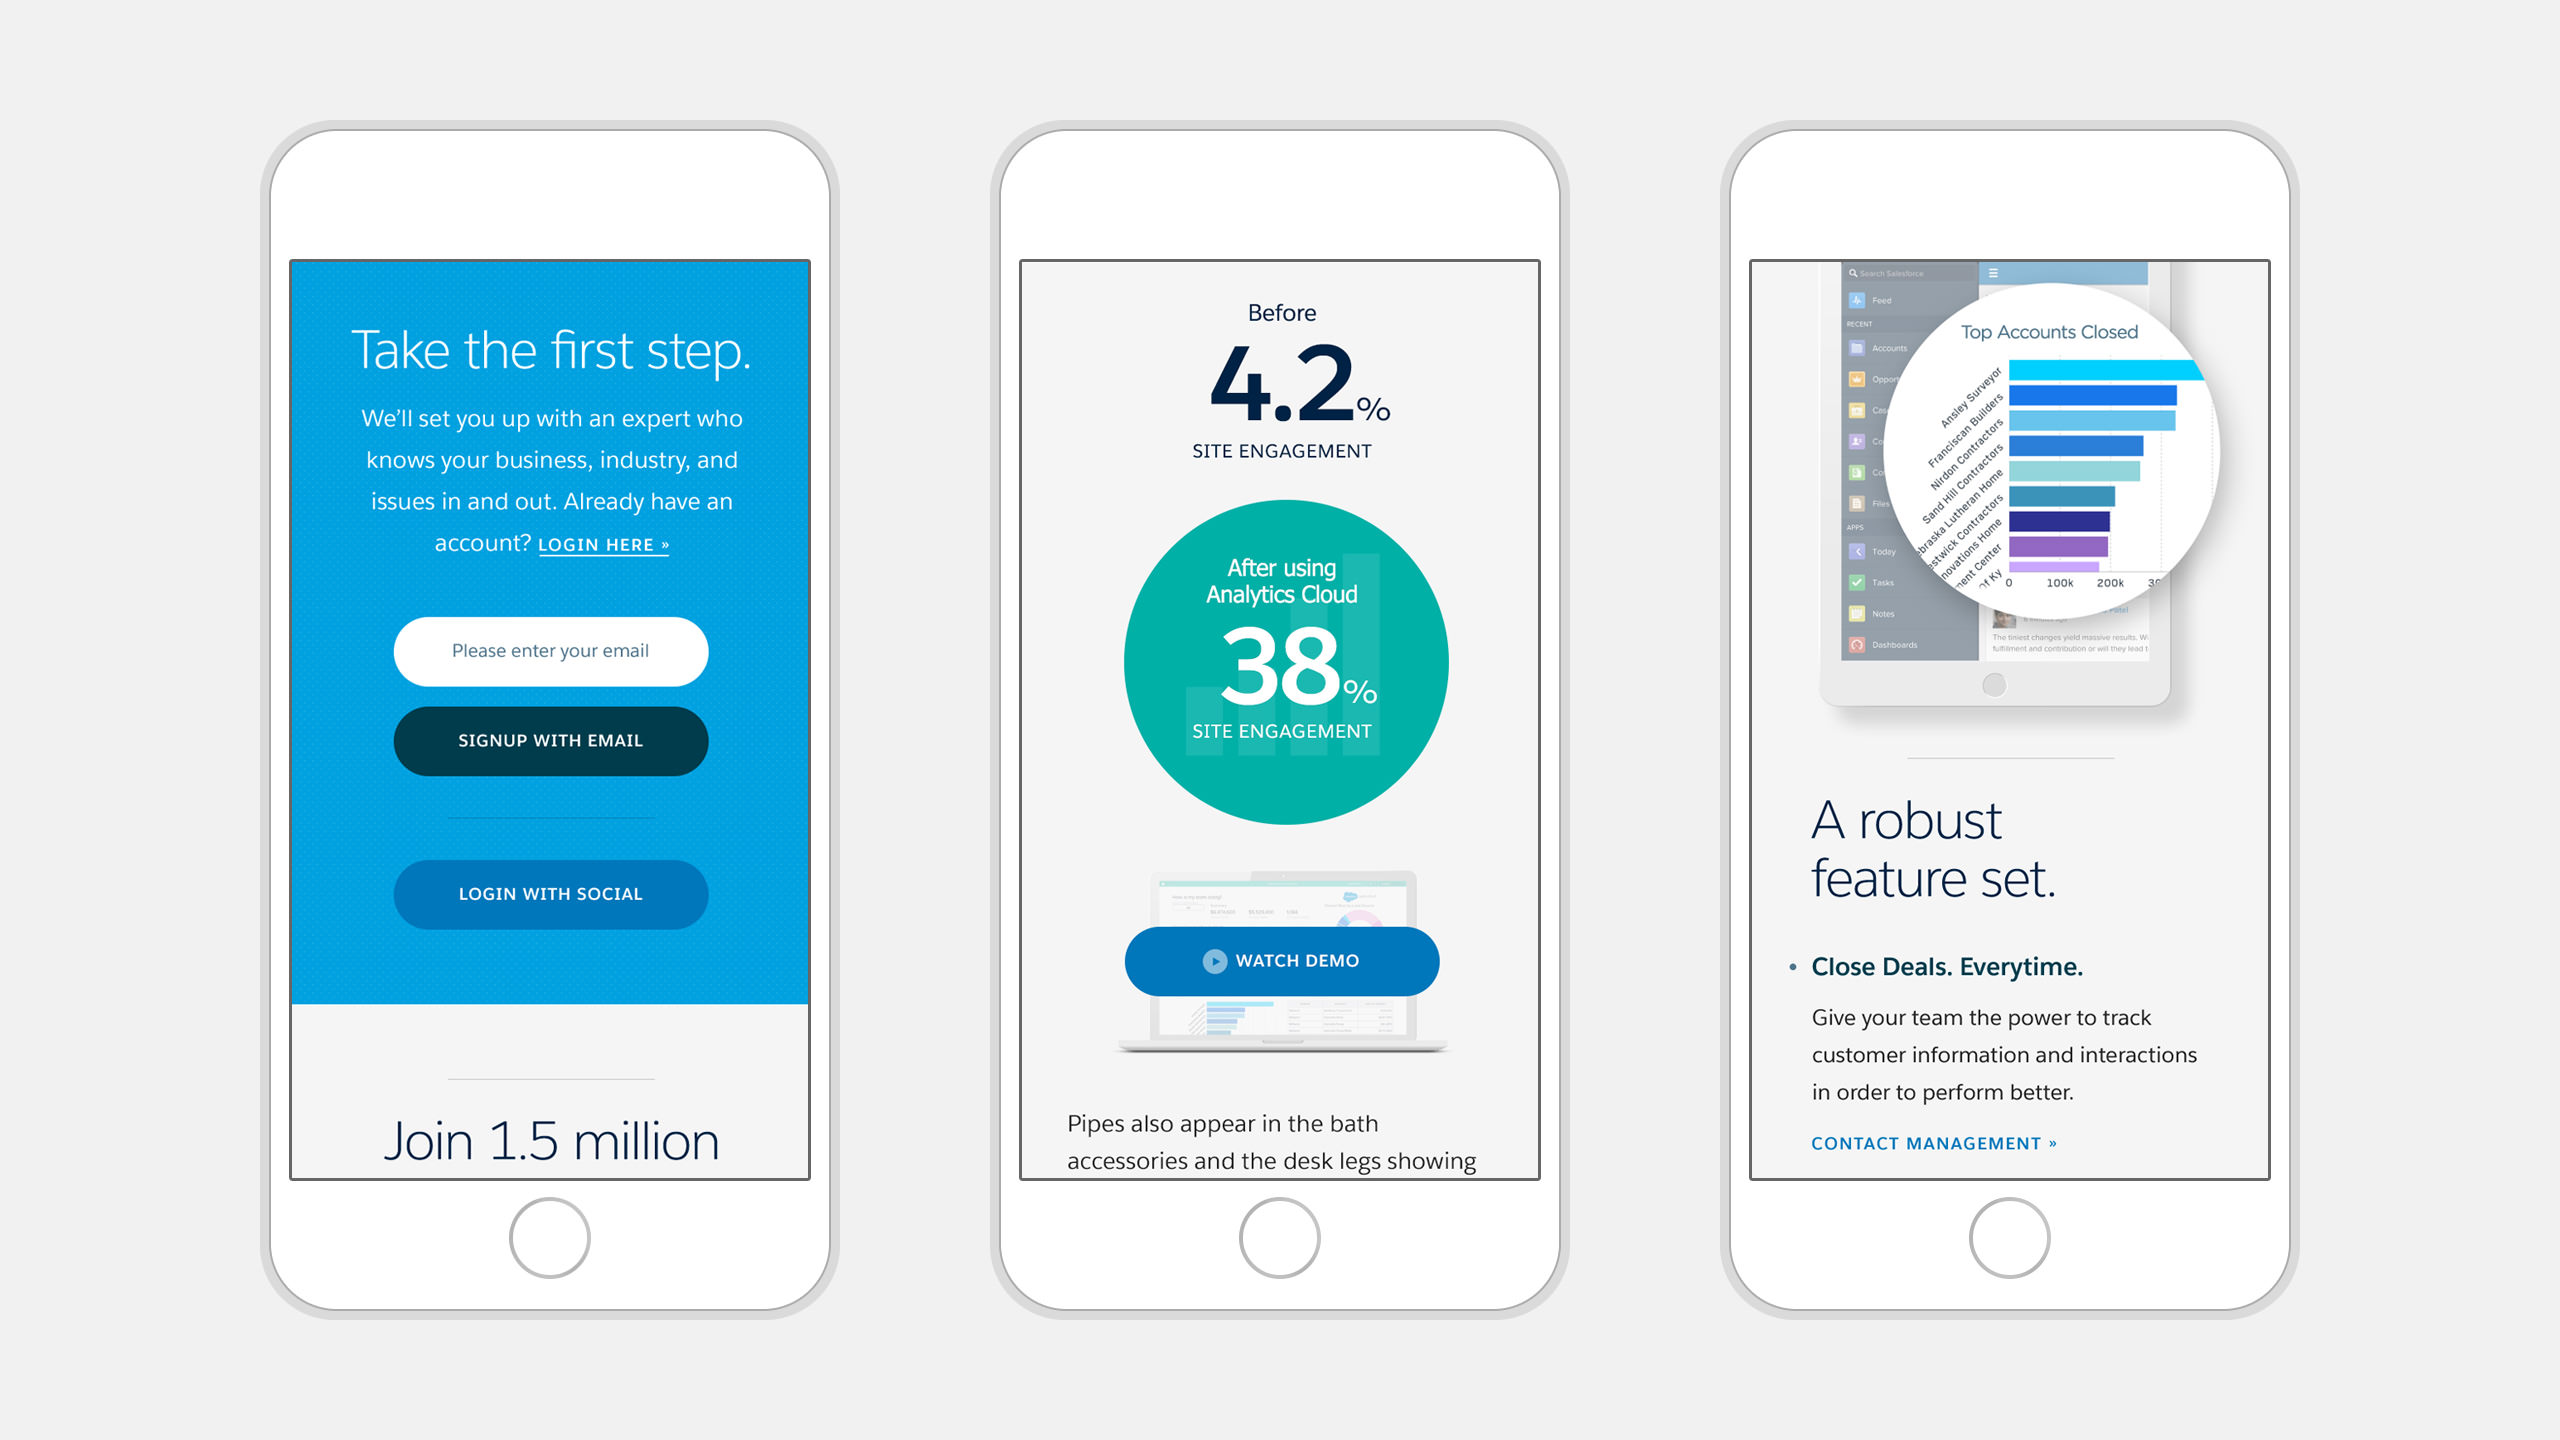 salesforce-brand-application-app-screens-3up